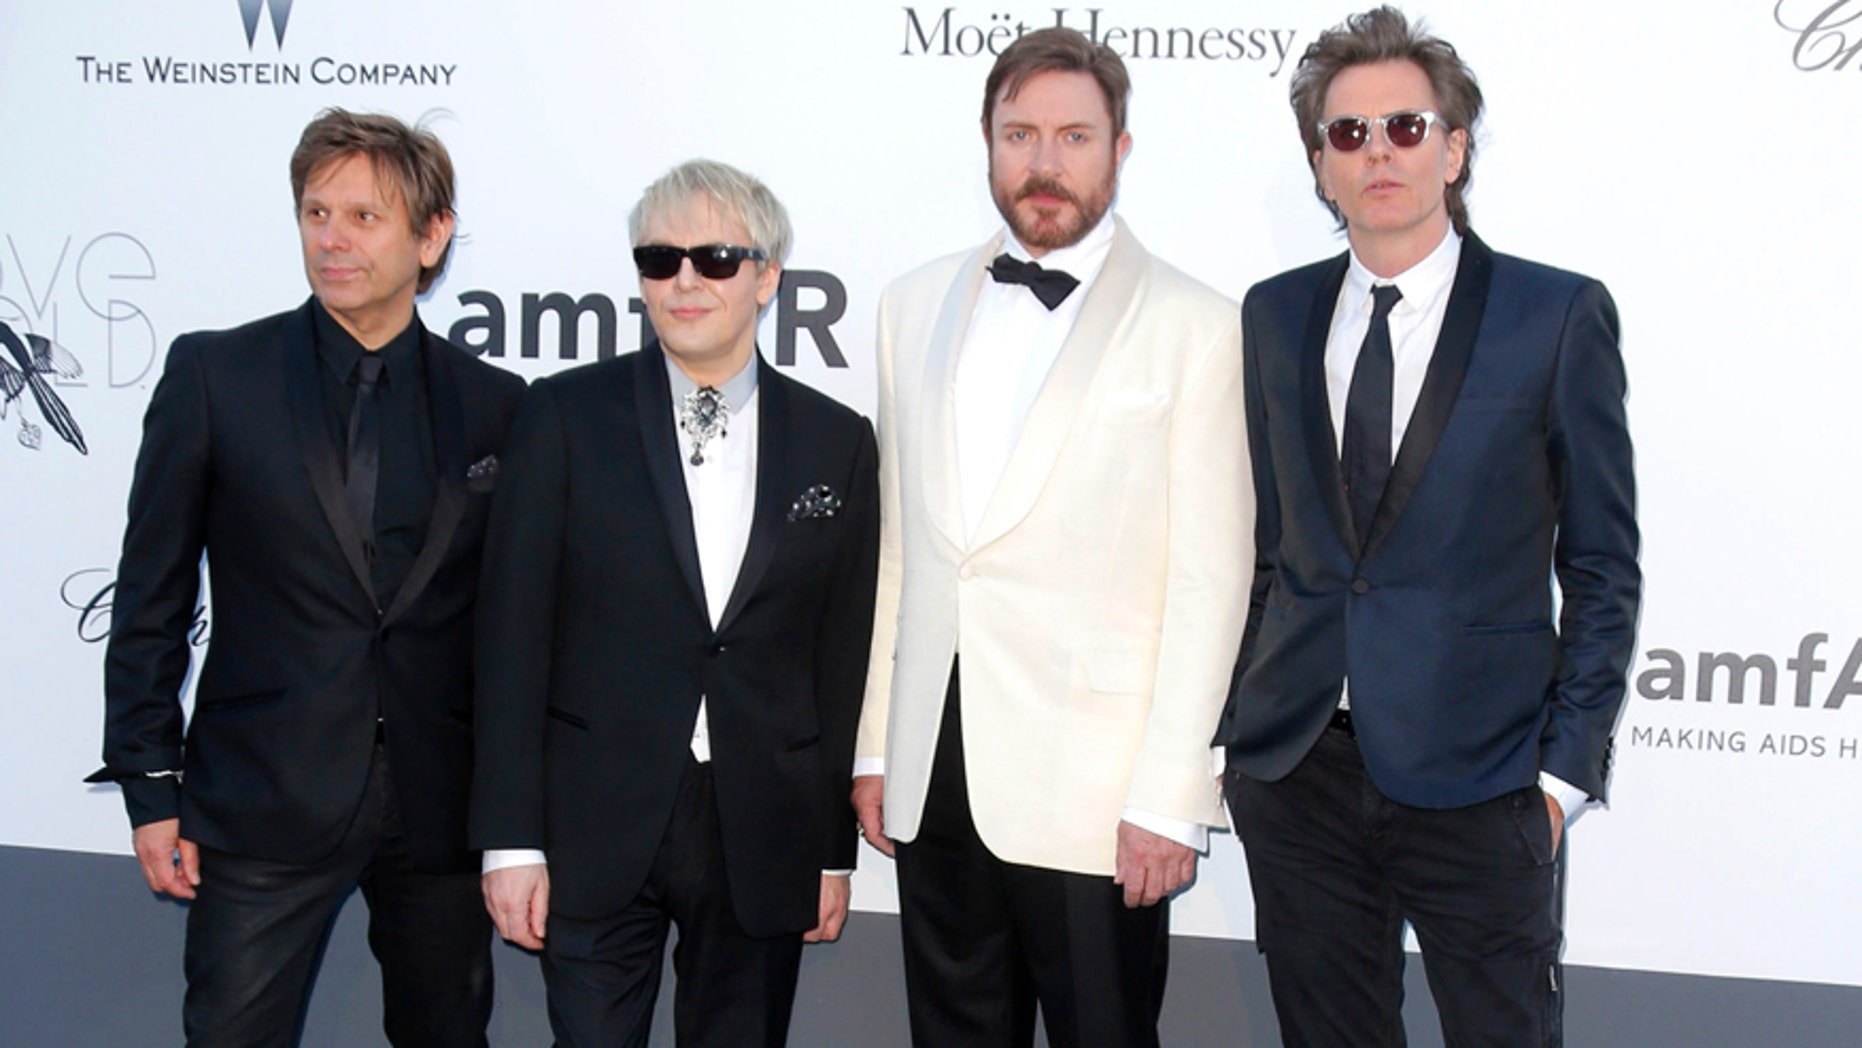 """FILE - This May 23, 2013 file photo shows members of Duran Duran, from left, Roger Taylor, Nick Rhodes, Simon Le Bon and John Taylor arrive at amfAR Cinema Against AIDS benefit during the 66th international film festival, in Cap d'Antibes, southern France. The group known for hits like """"Notorious"""" and """"Hungry Like the Wolf"""" accuses the suburban Chicago-based club of breaching contract by not forwarding promised revenue to the band. The Chicago Sun-Times reports that Duran Duran's lawsuit names Glenview-based Worldwide Fan Clubs, Inc. as the defendant. The suit was filed in Cook County Circuit Court this week. (Photo by Todd Williamson/Invision/AP, File)"""